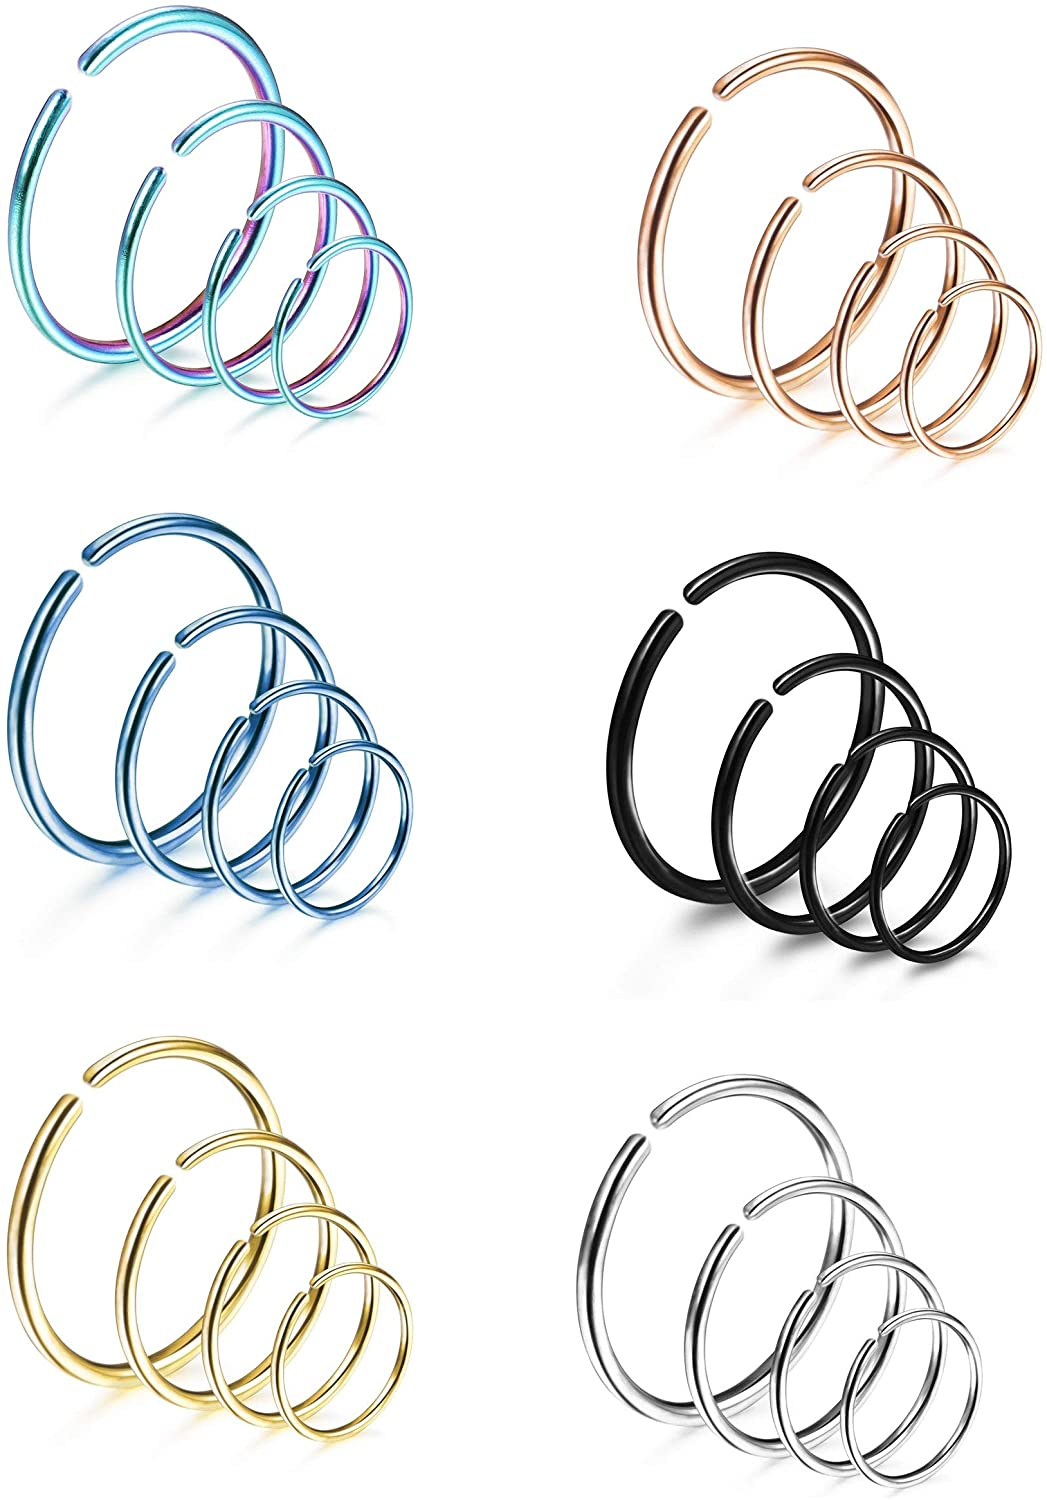 LOYALLOOK 18-24Pcs 20G 316L Stainless Steel Nose Ring Hoop Cartilage Hoop Septum Piercing 6-12mm